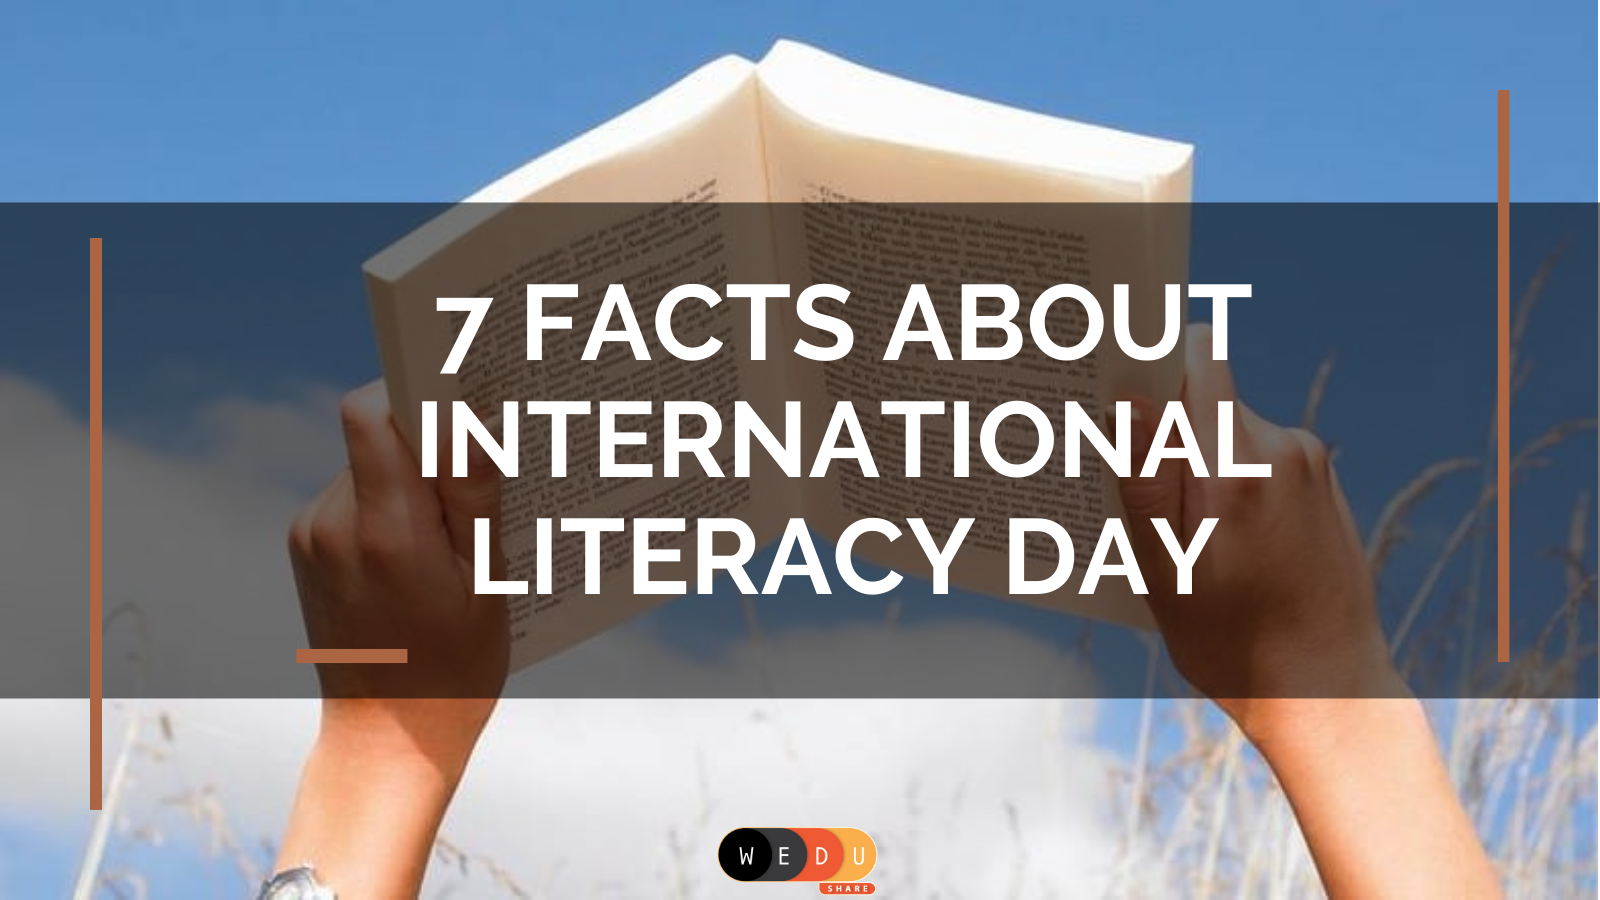 7 Facts About International Literacy Day